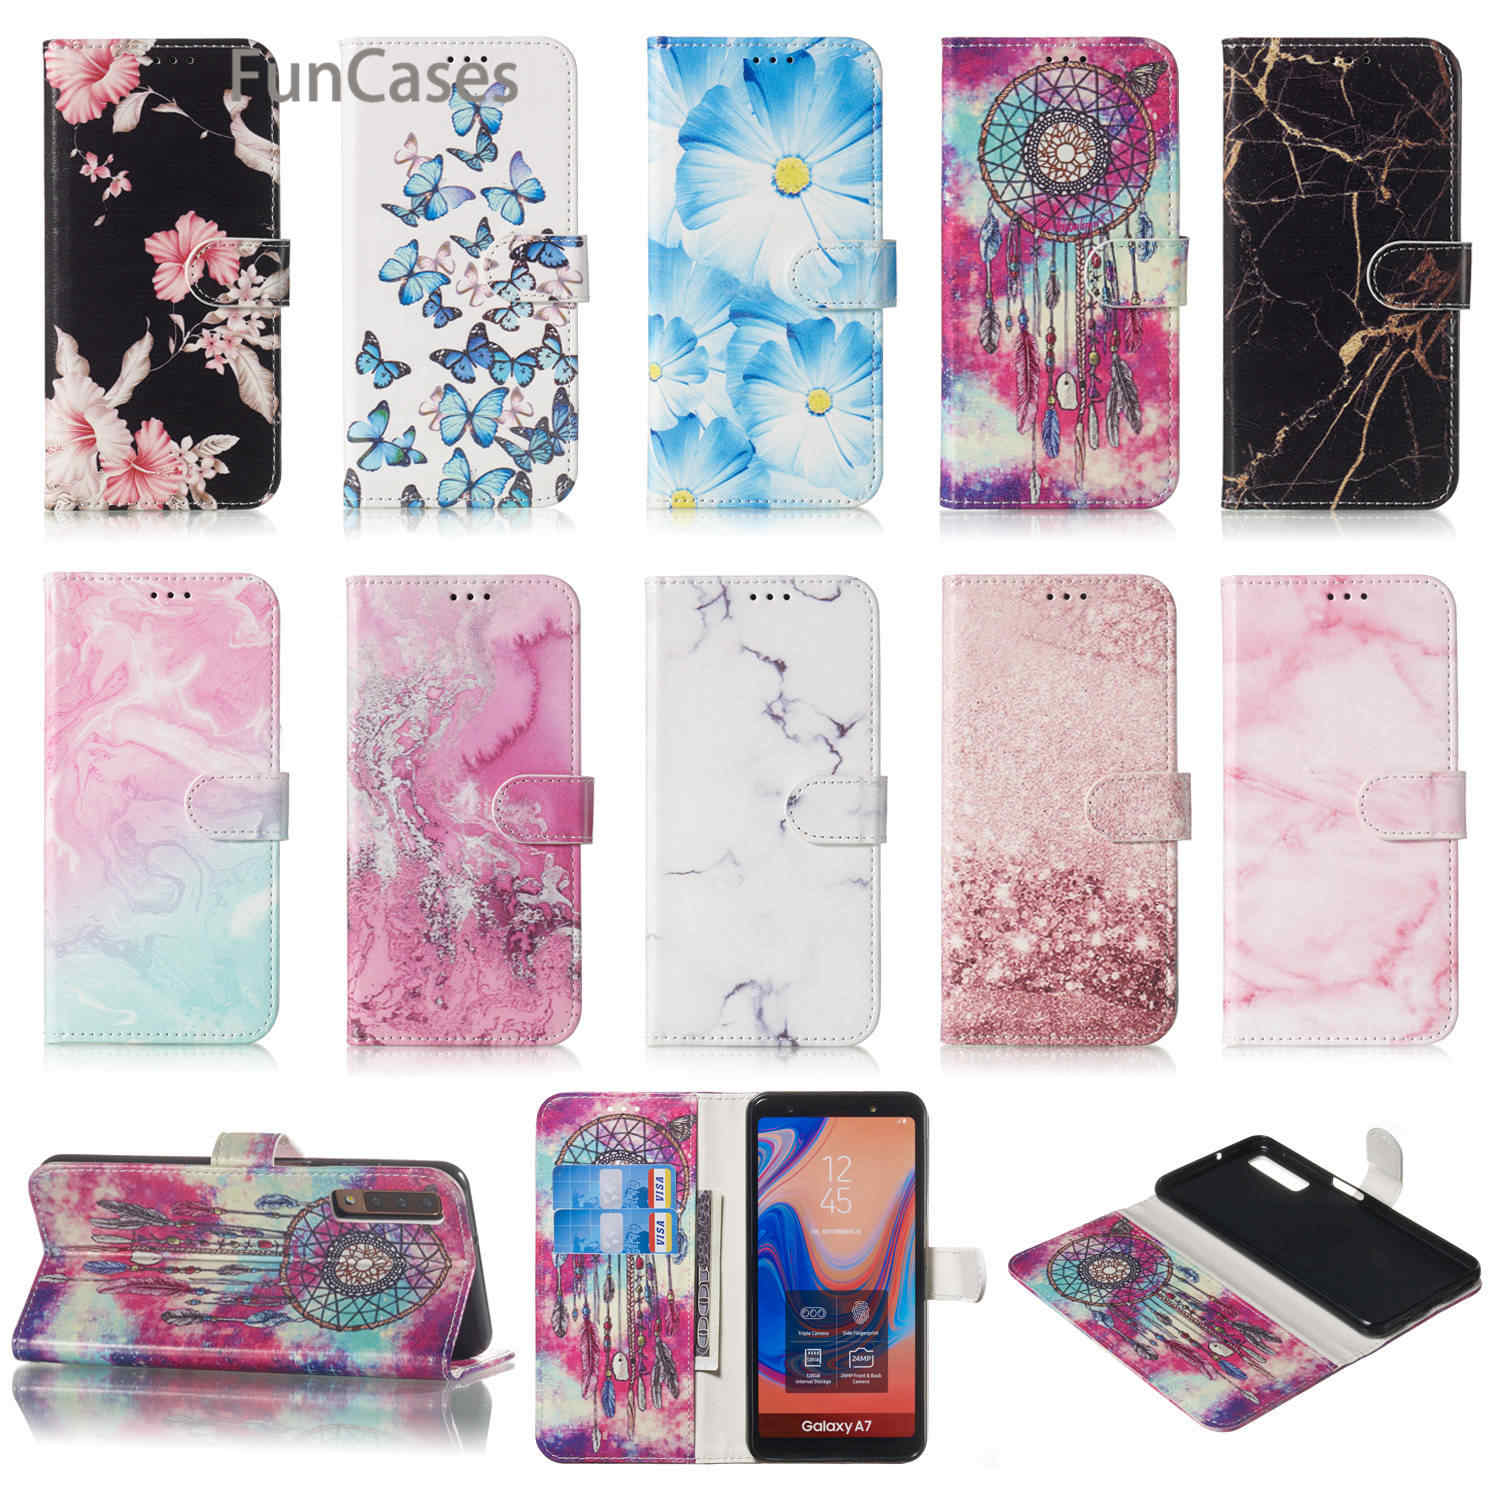 Pink PU Flip Case For Samsung A10 Silicone Cases Covers Samsung A750 A9 2018 A310 A3 2017 A510 A5 A20 A30 A40 A50 A60 A70 A20E